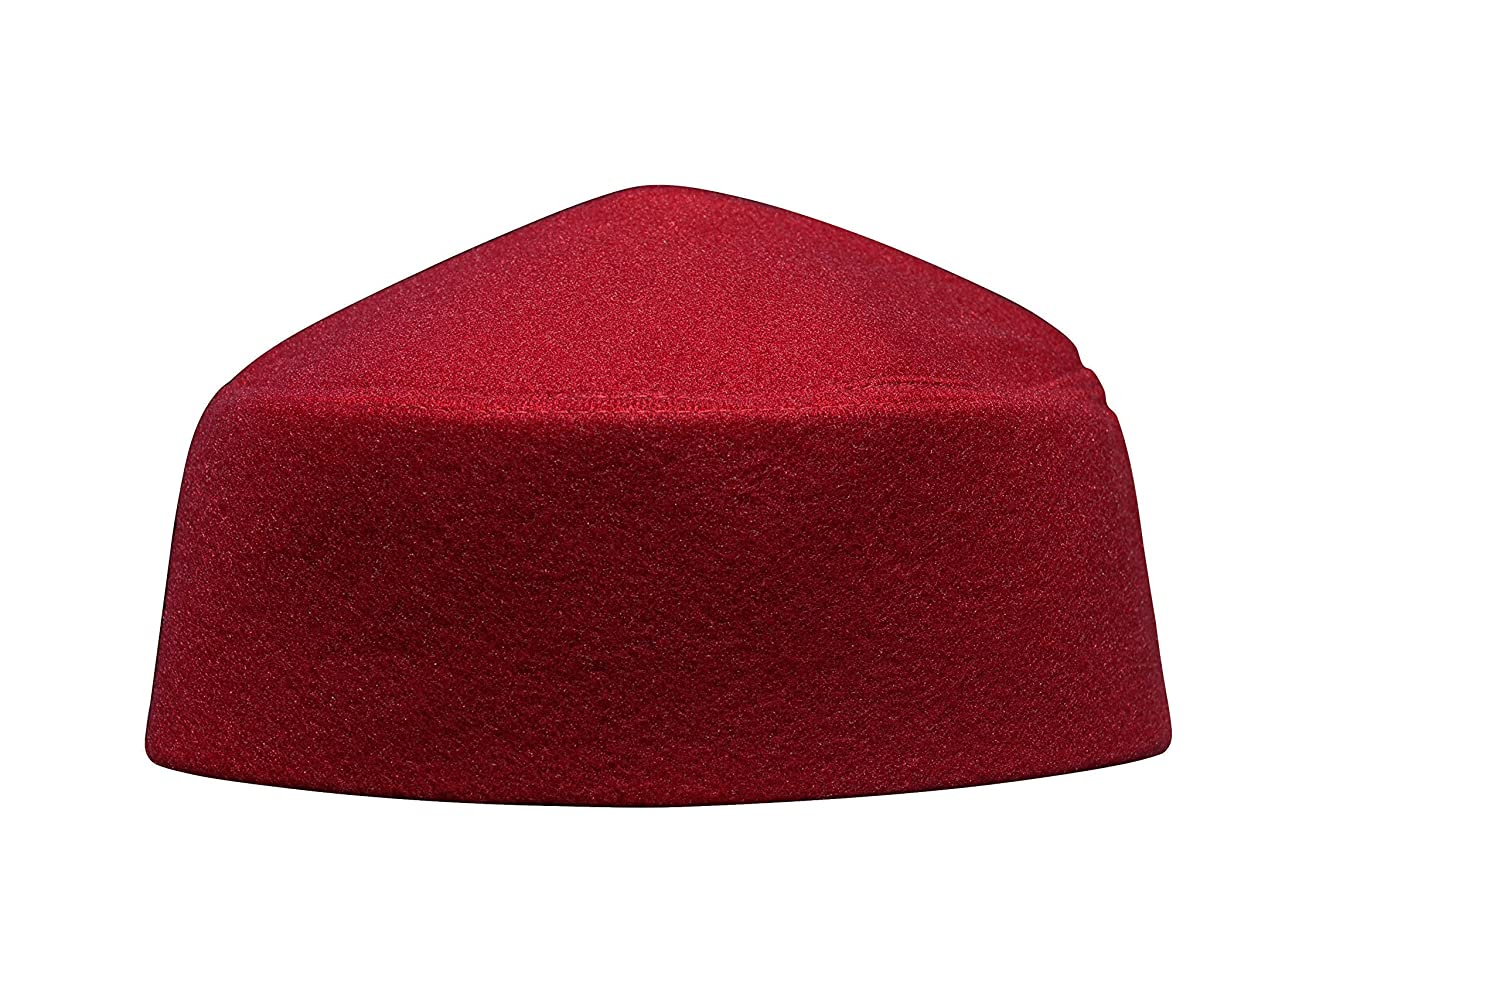 5f574f48e TheKufi Solid Maroon Moroccan Fez-Style Kufi Hat Cap w/Pointed Top ...